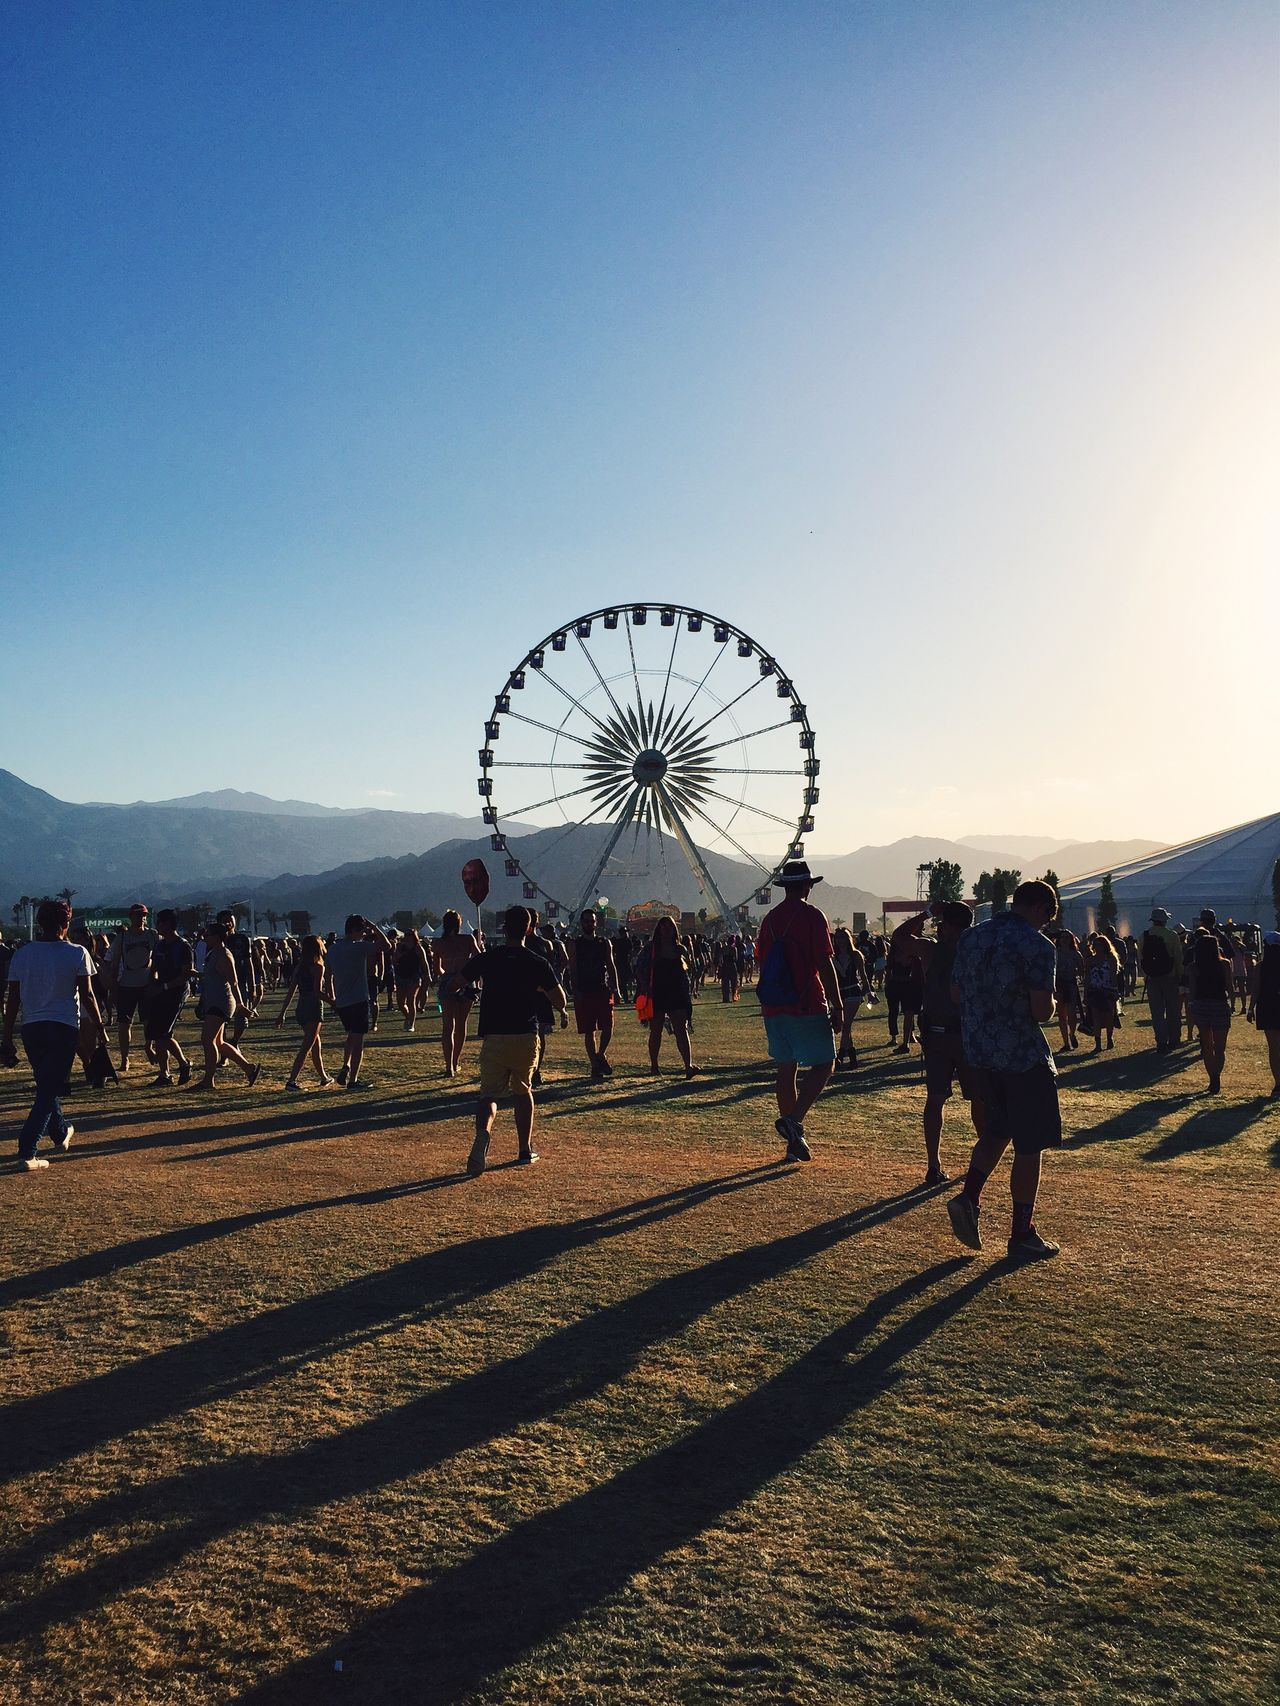 Beautiful stock photos of music festival, Amusement Park, Clear Sky, Crowd, Ferris Wheel